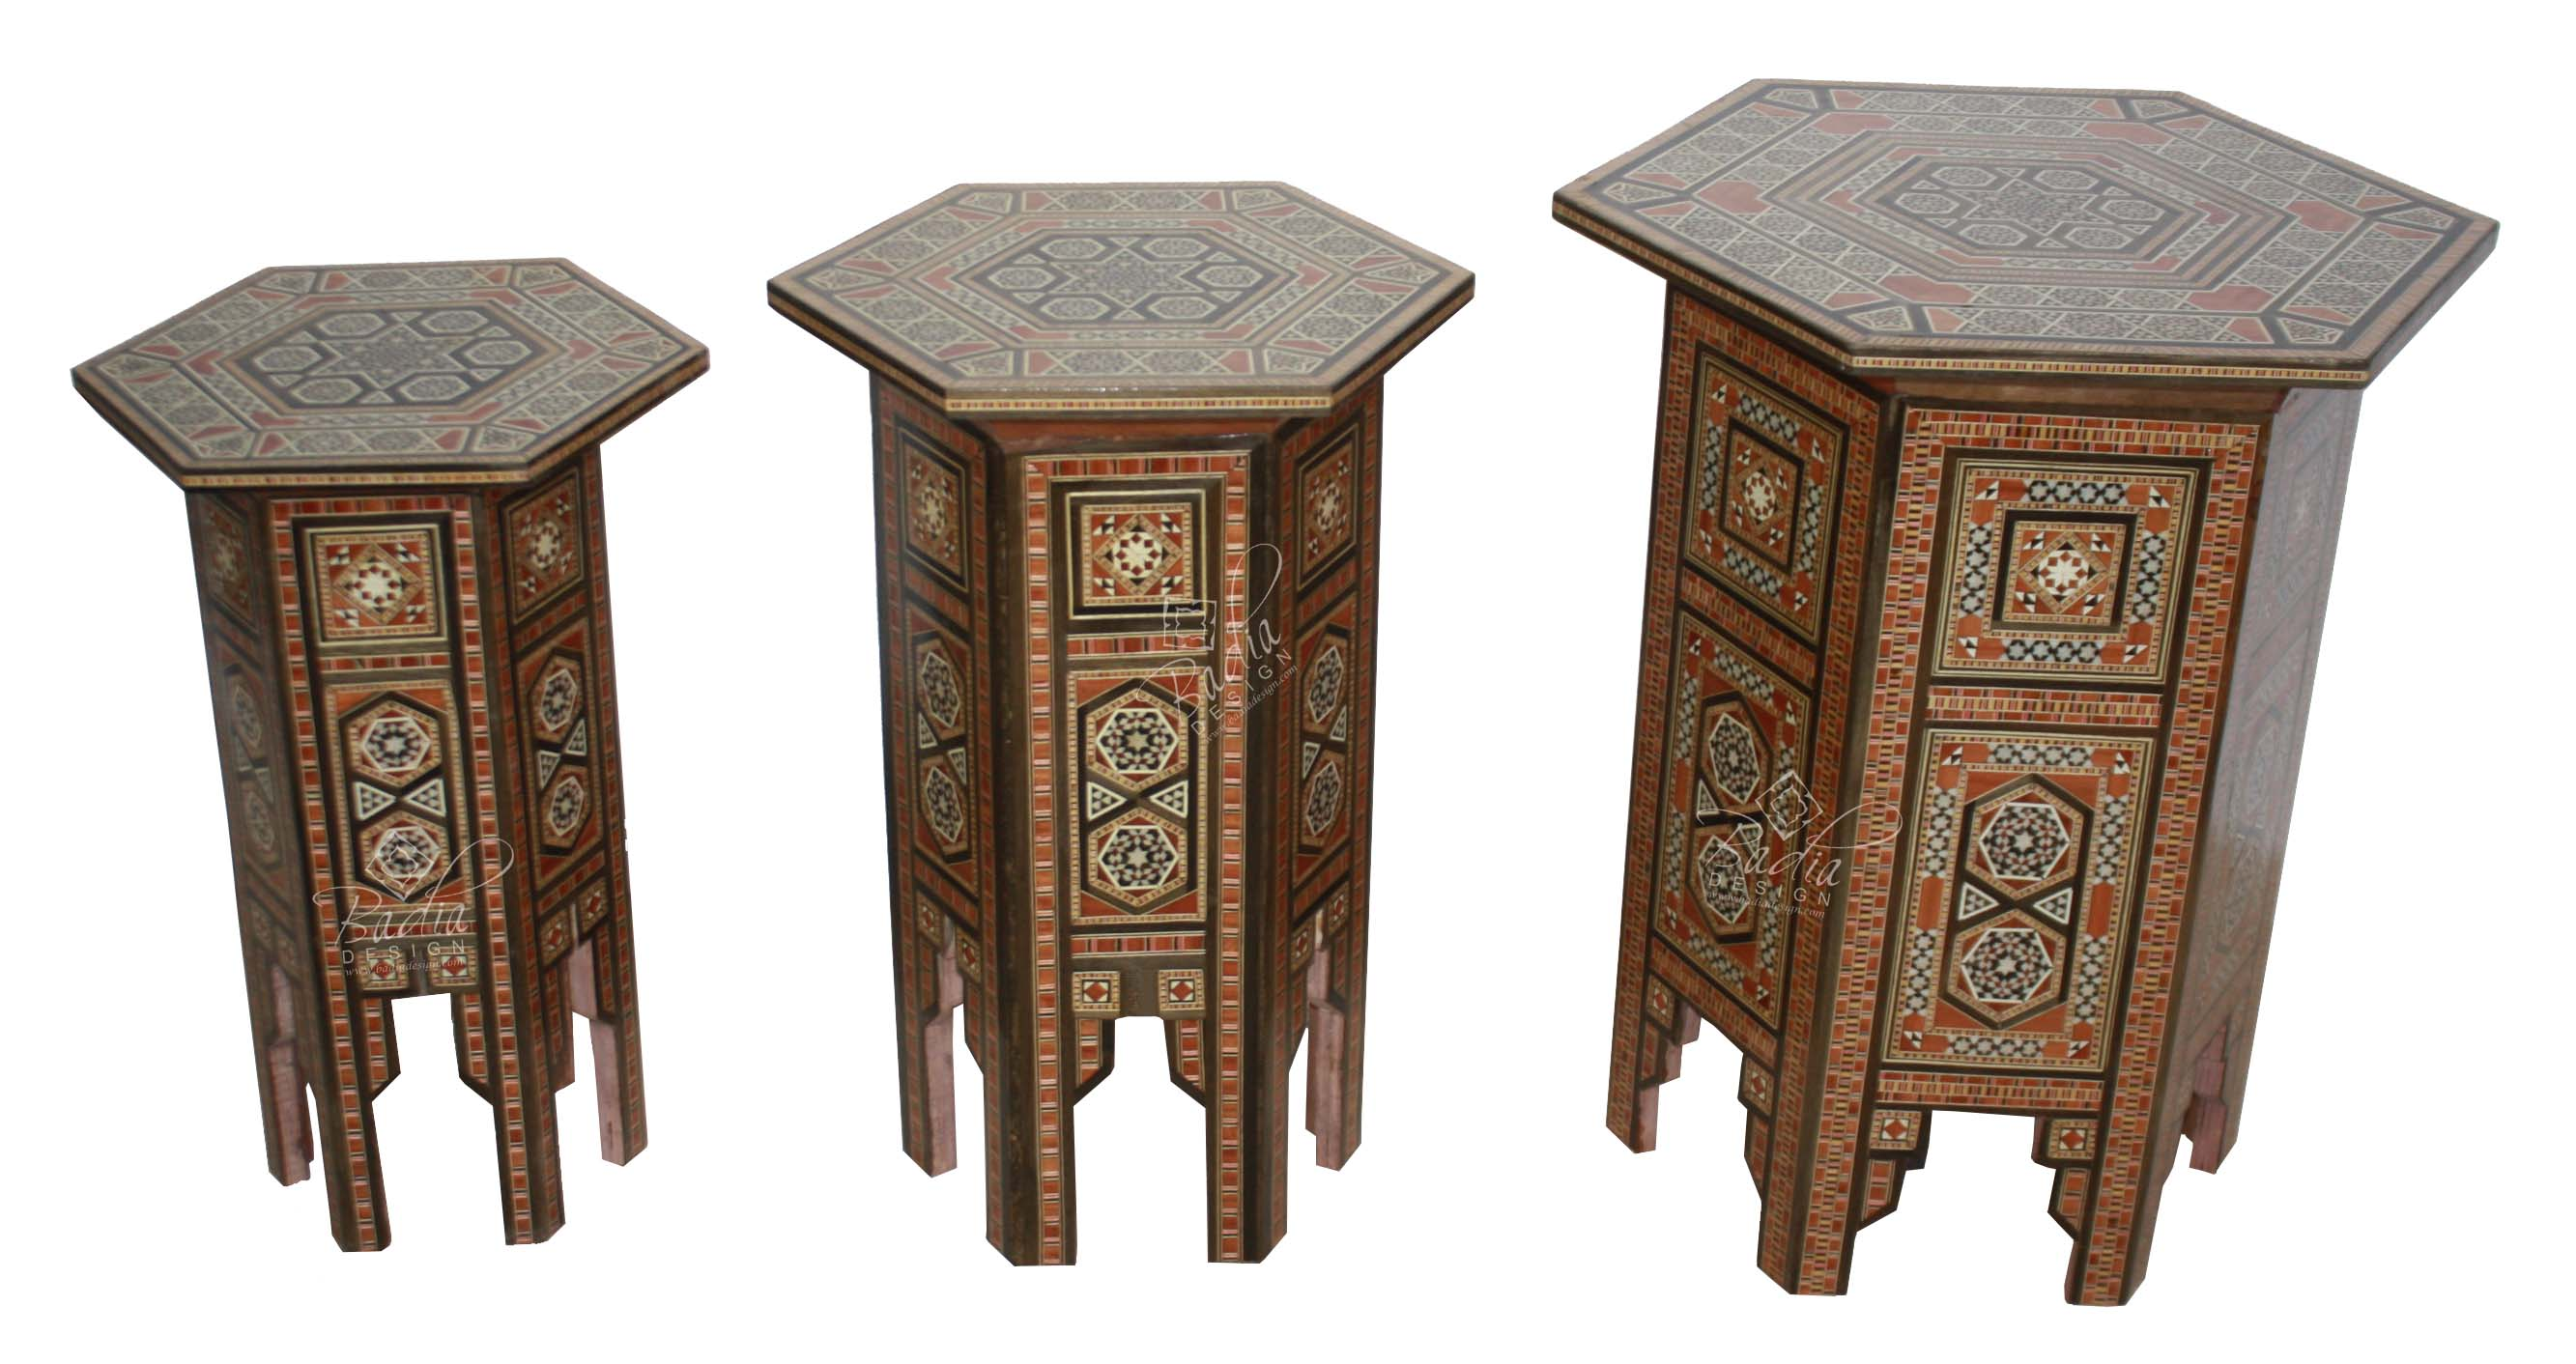 syrian-design-inlaid-side-table-mop-st098-1.jpg